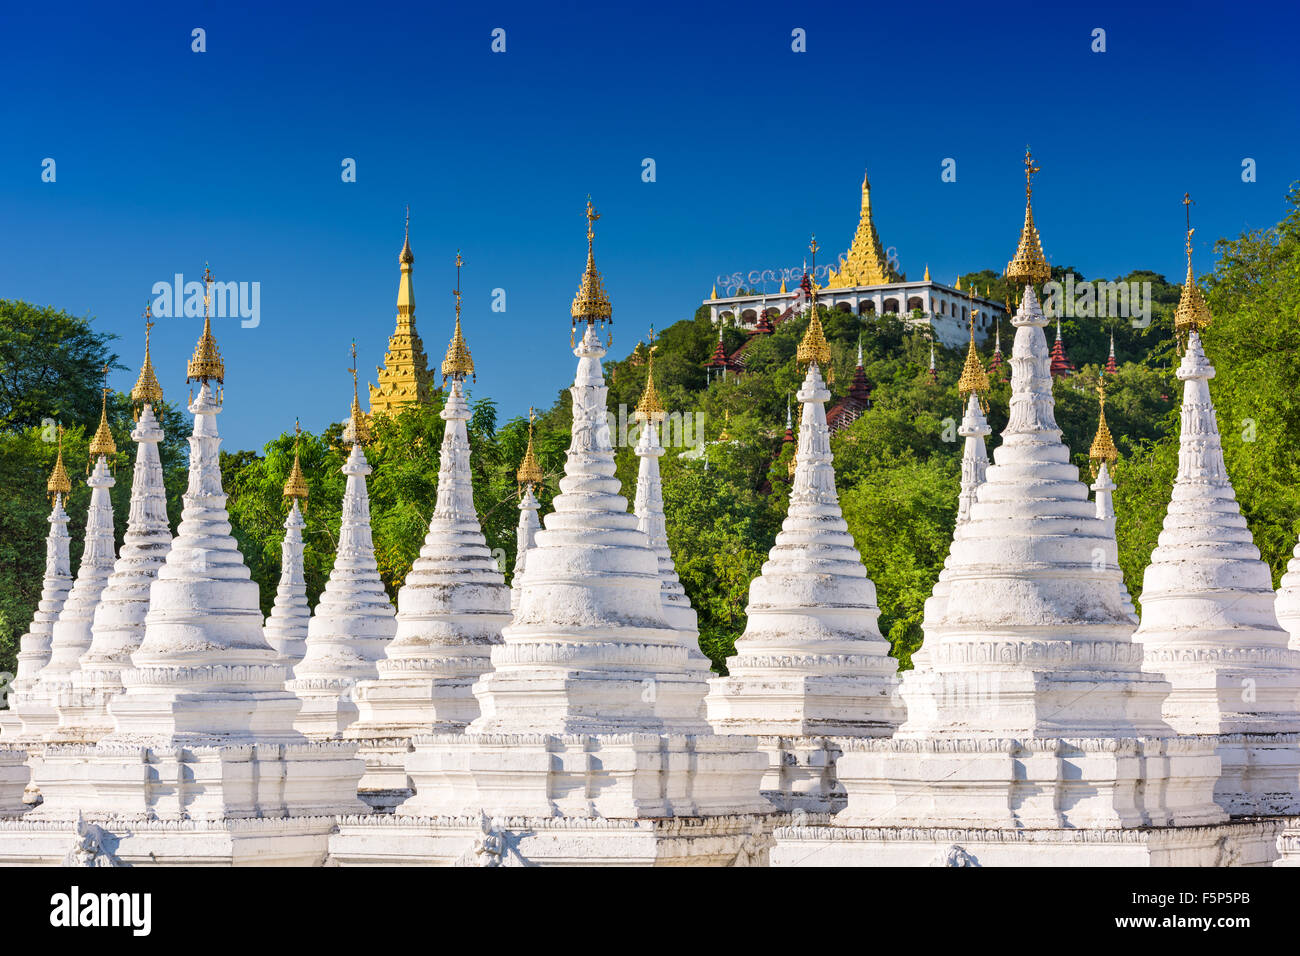 Sandamuni Pagoda Temple stupas in Mandalay, Myanmar. - Stock Image